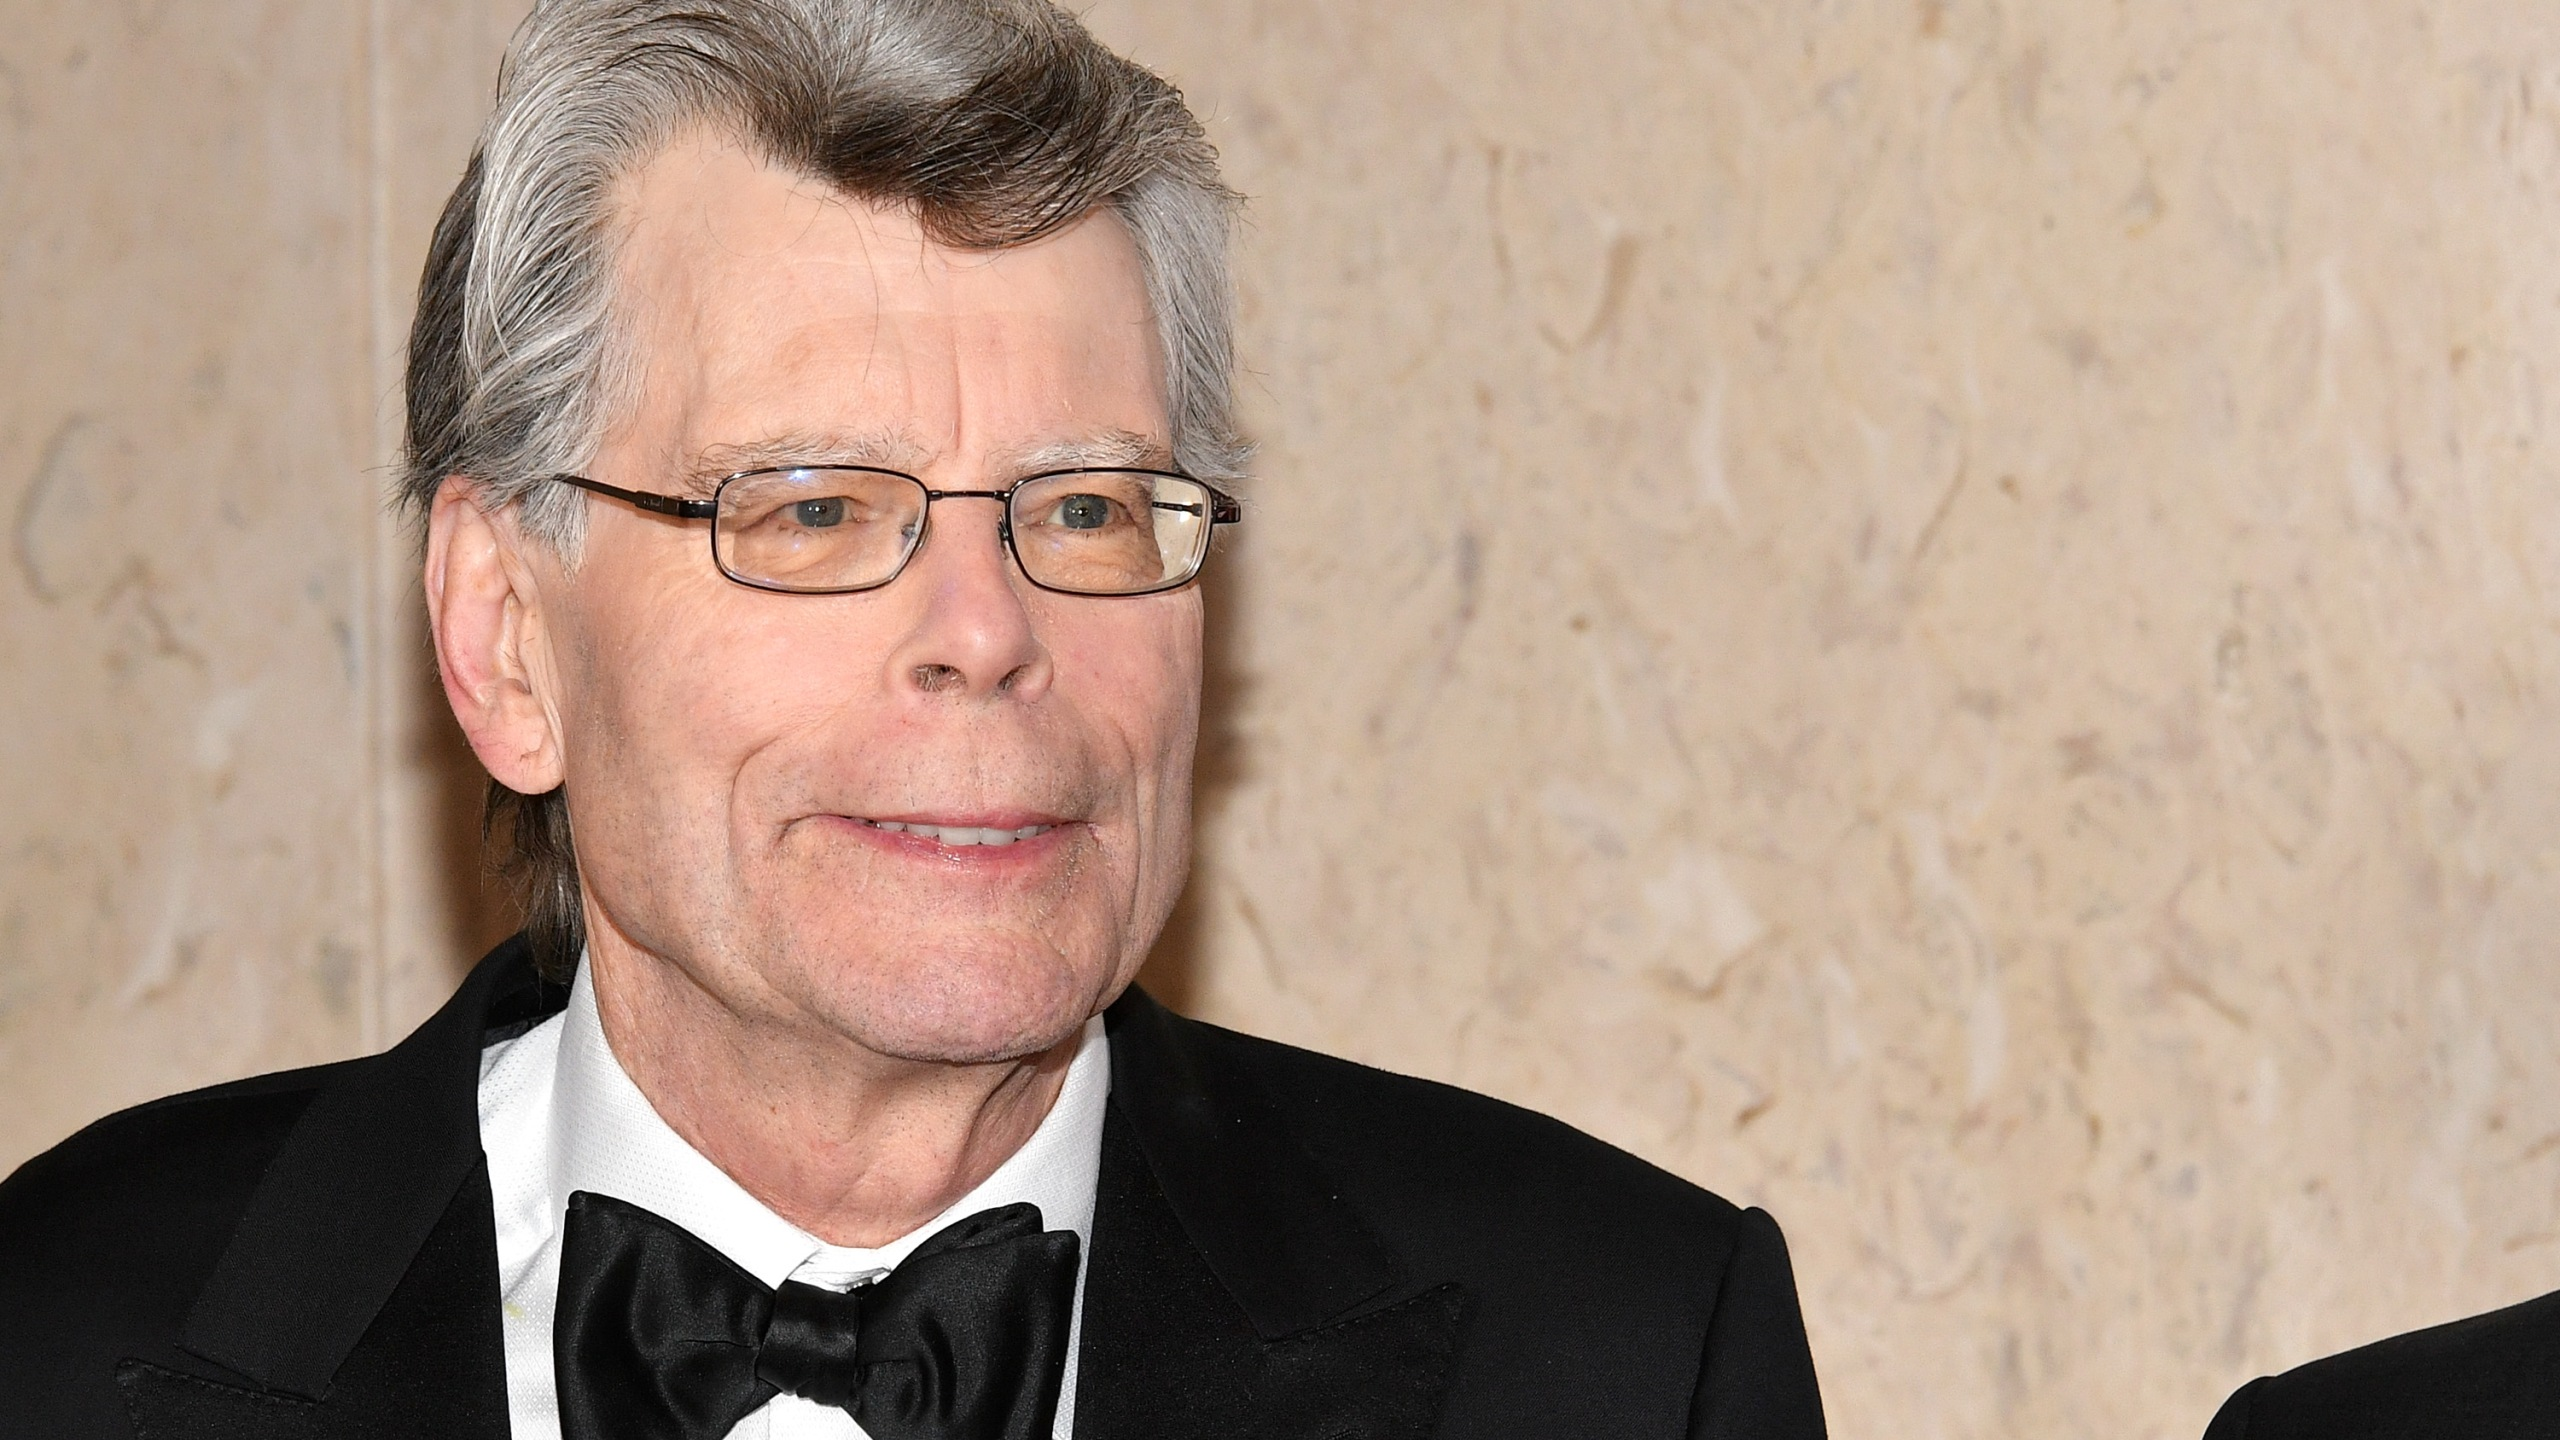 Stephen King attends the 2018 PEN Literary Gala at the American Museum of Natural History on May 22, 2018 in New York City. (Credit: Dia Dipasupil/Getty Images)